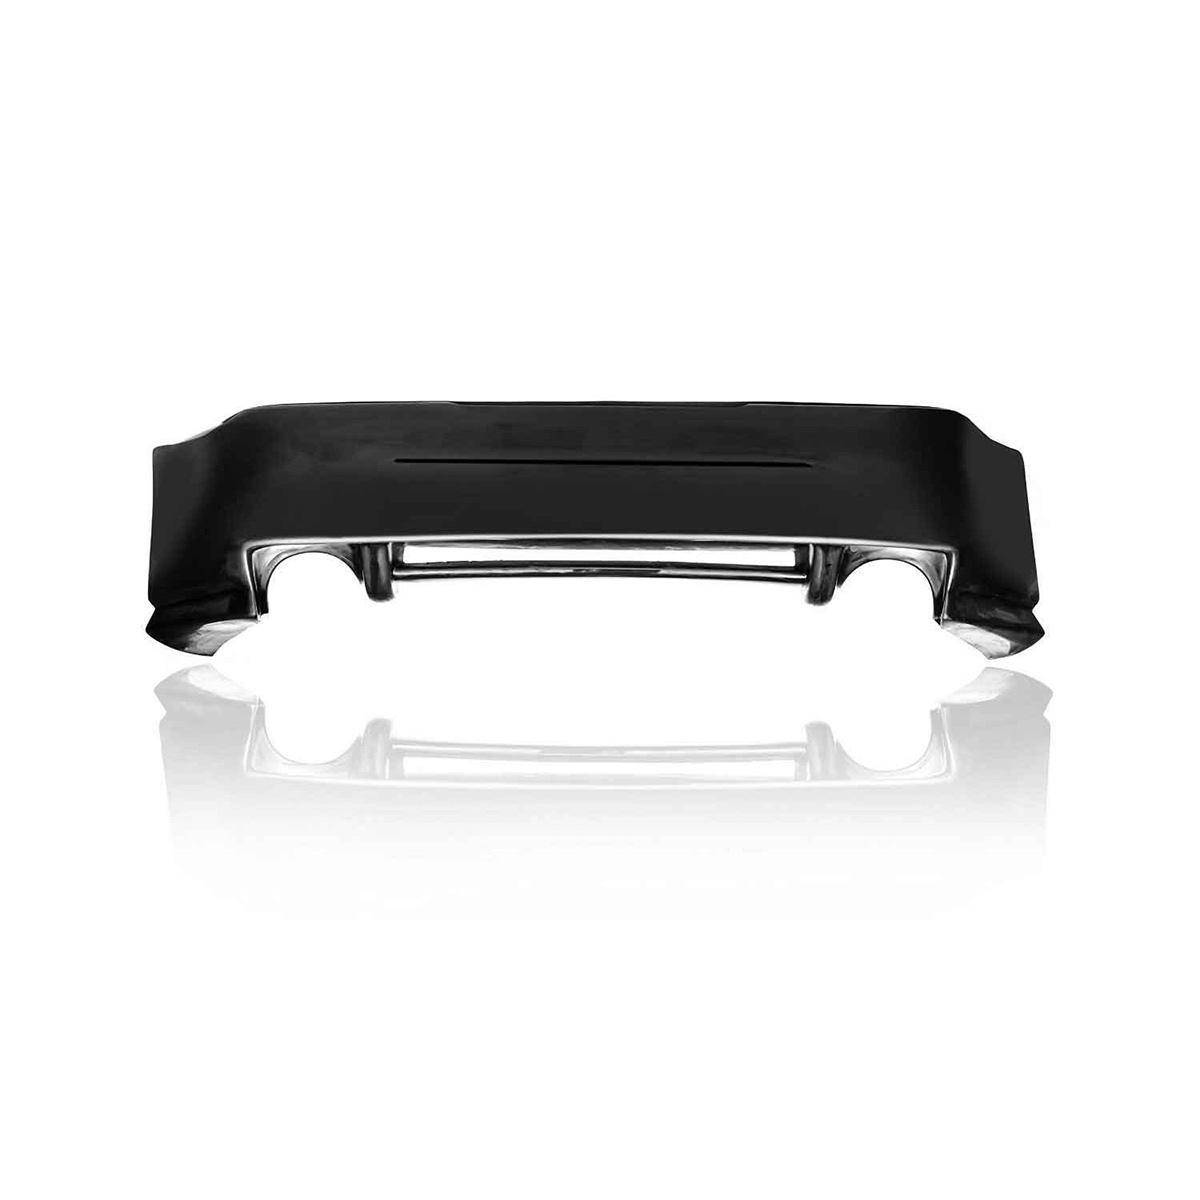 Ford Mustang 1999-2004 Spy 2 Style 1 Piece Polyurethane Rear Bumper